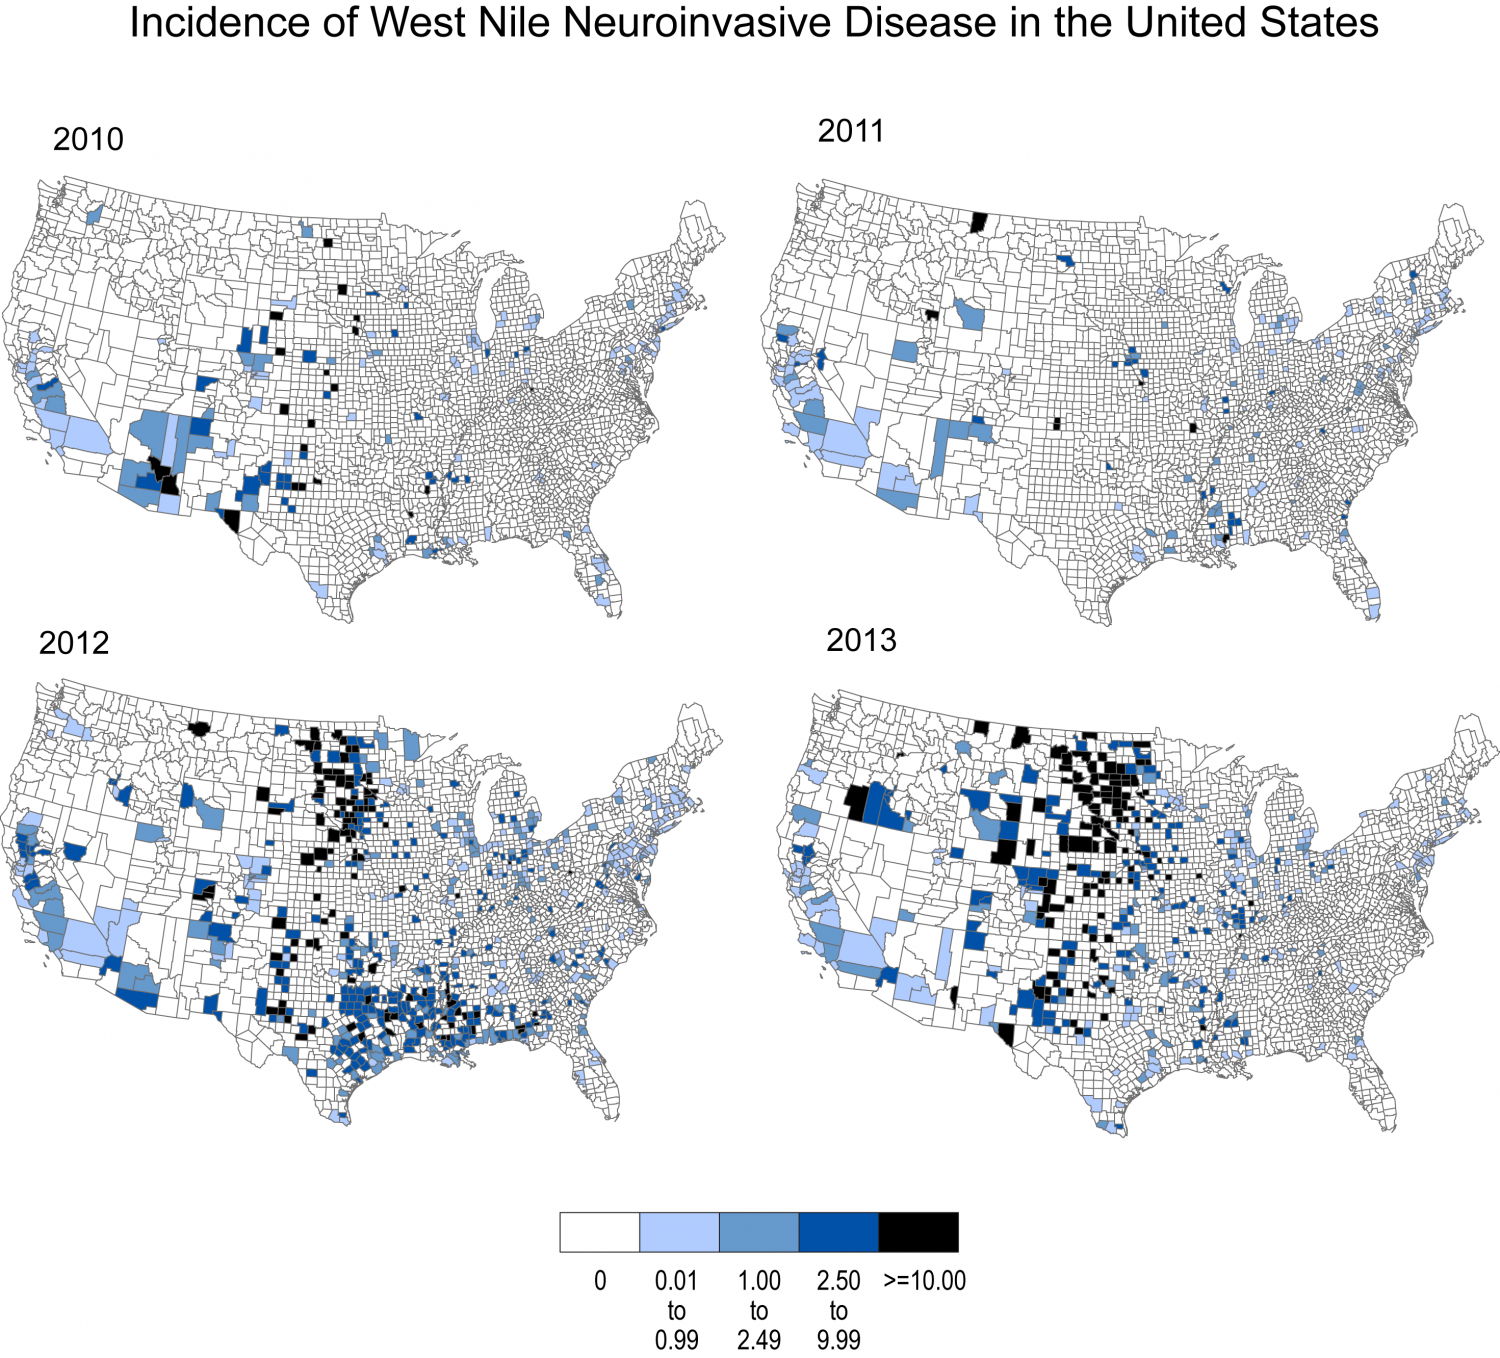 Incidence of West Nile Neuroinvasive Disease by County in the United States